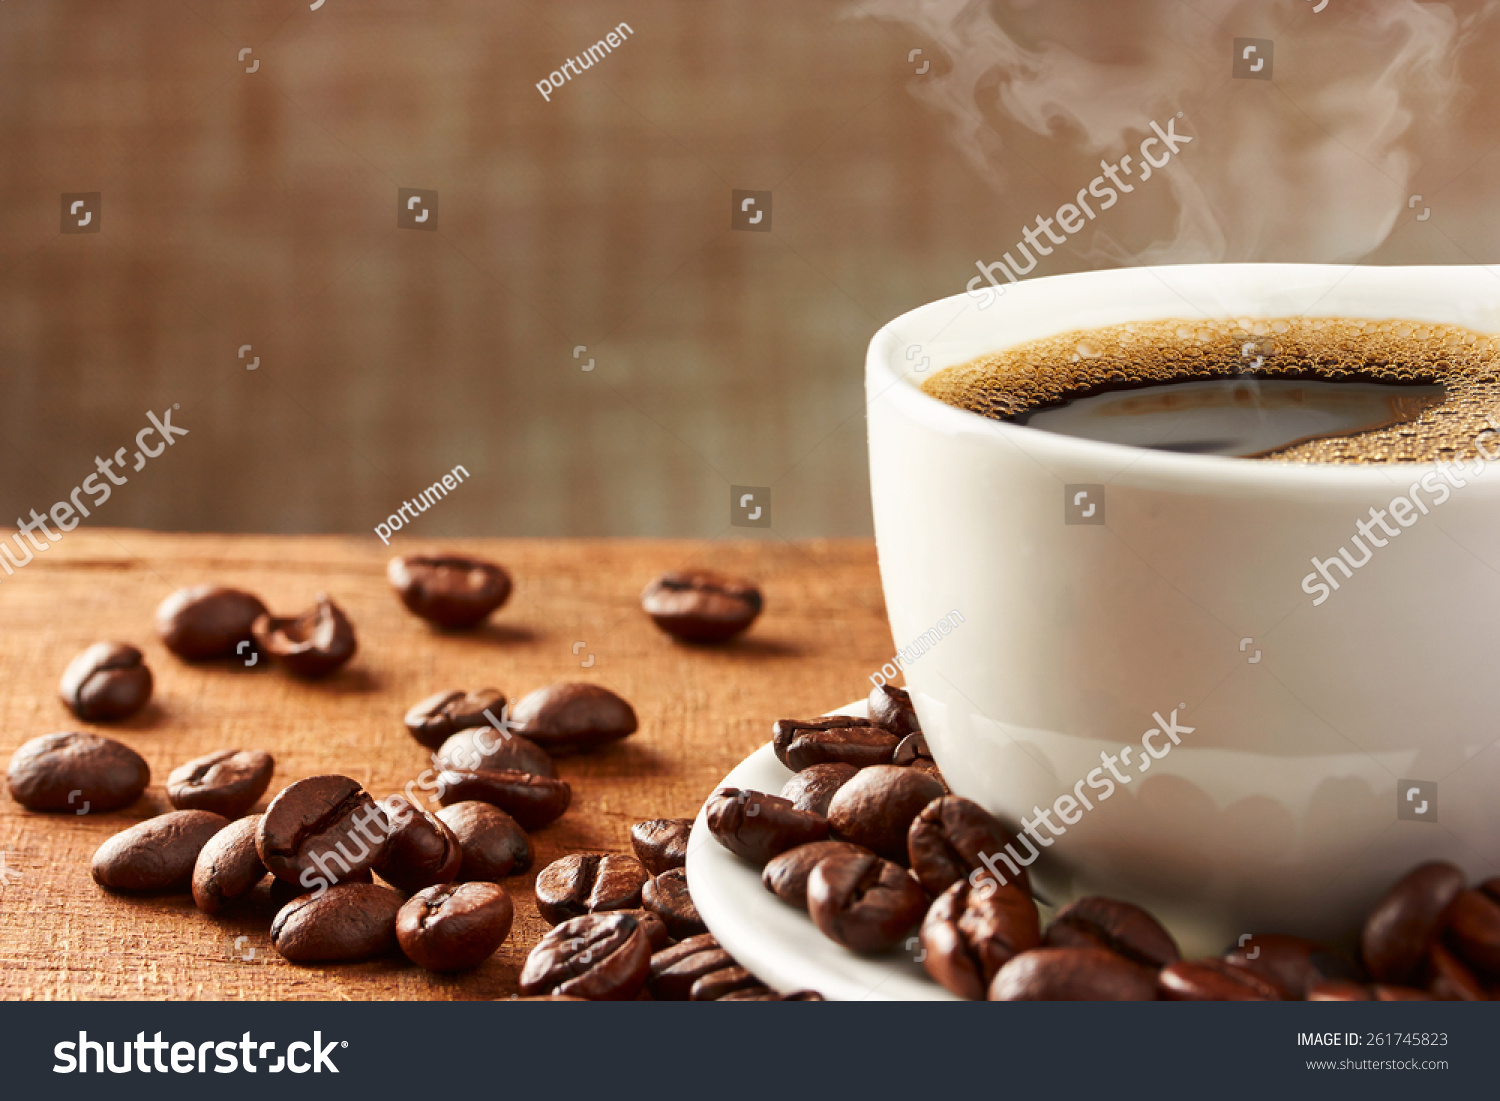 Coffee cup coffee beans on table stock photo 261745823 shutterstock coffee cup and coffee beans on table geotapseo Gallery